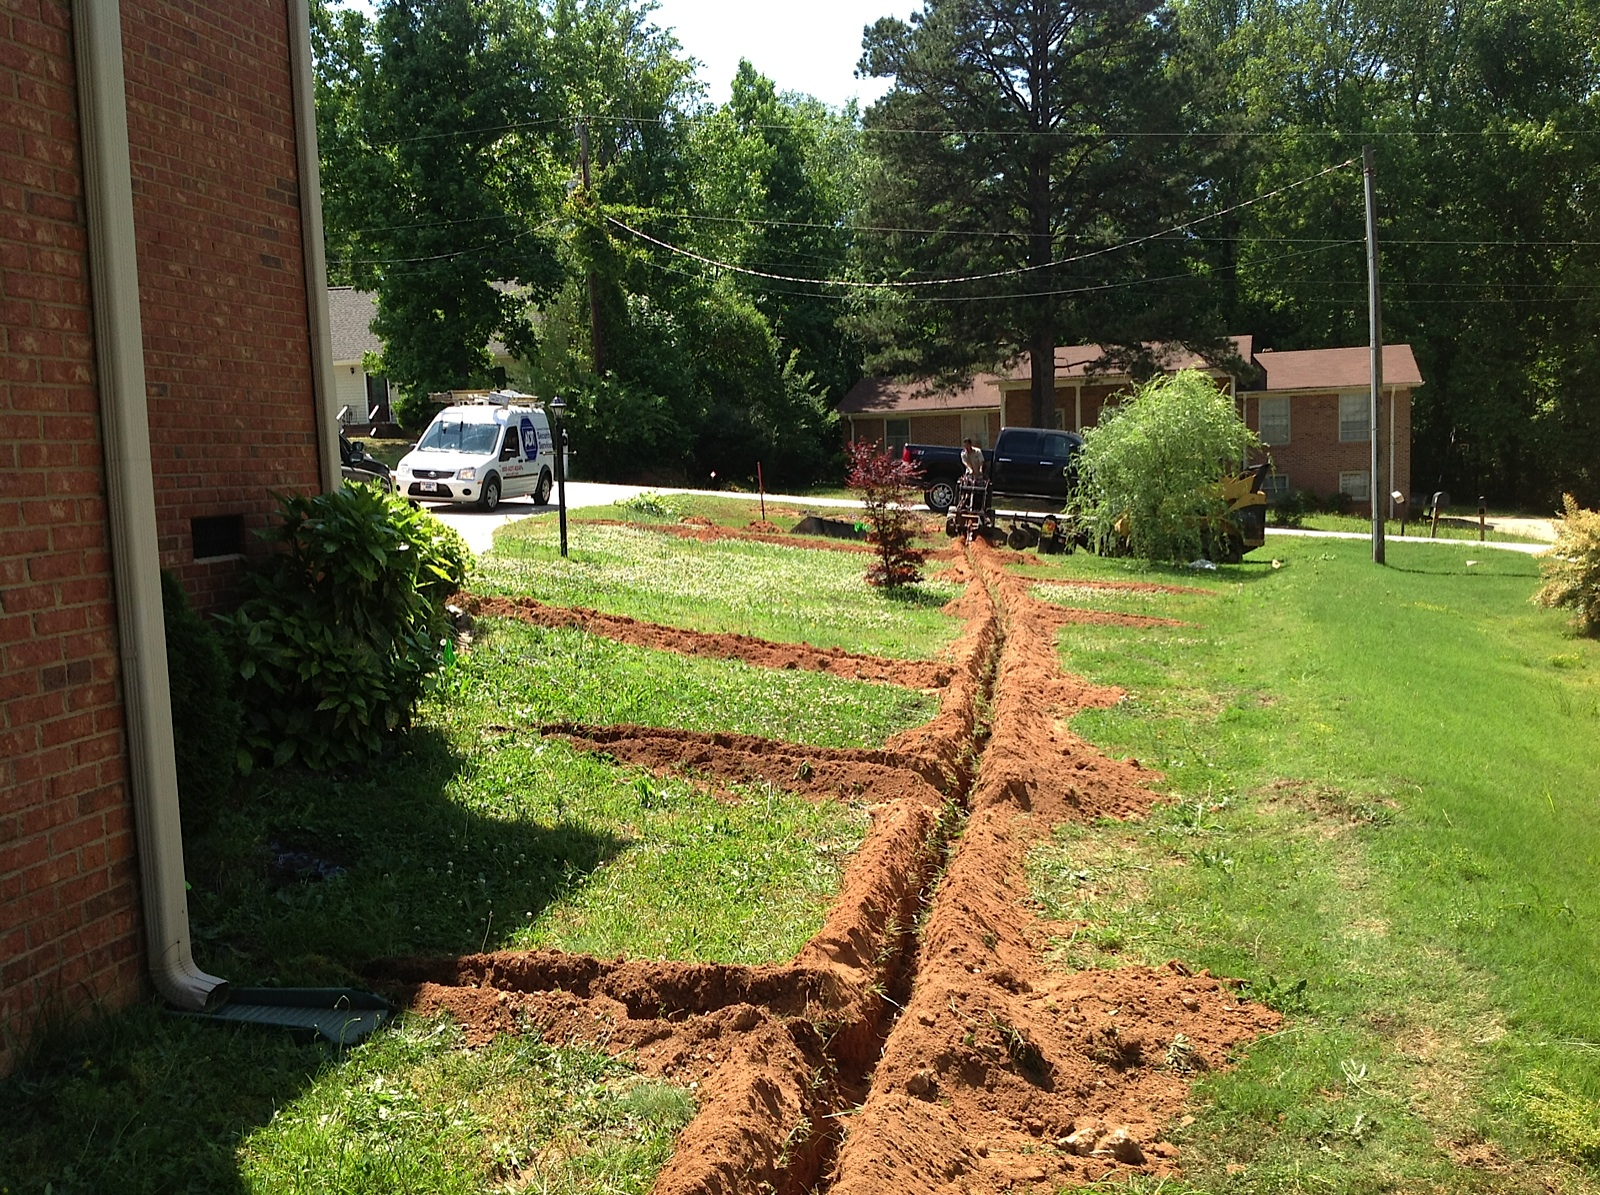 Stupendous Irrigation Systems Sprinkler Systems Cochran Sc Wiring Cloud Eachirenstrafr09Org